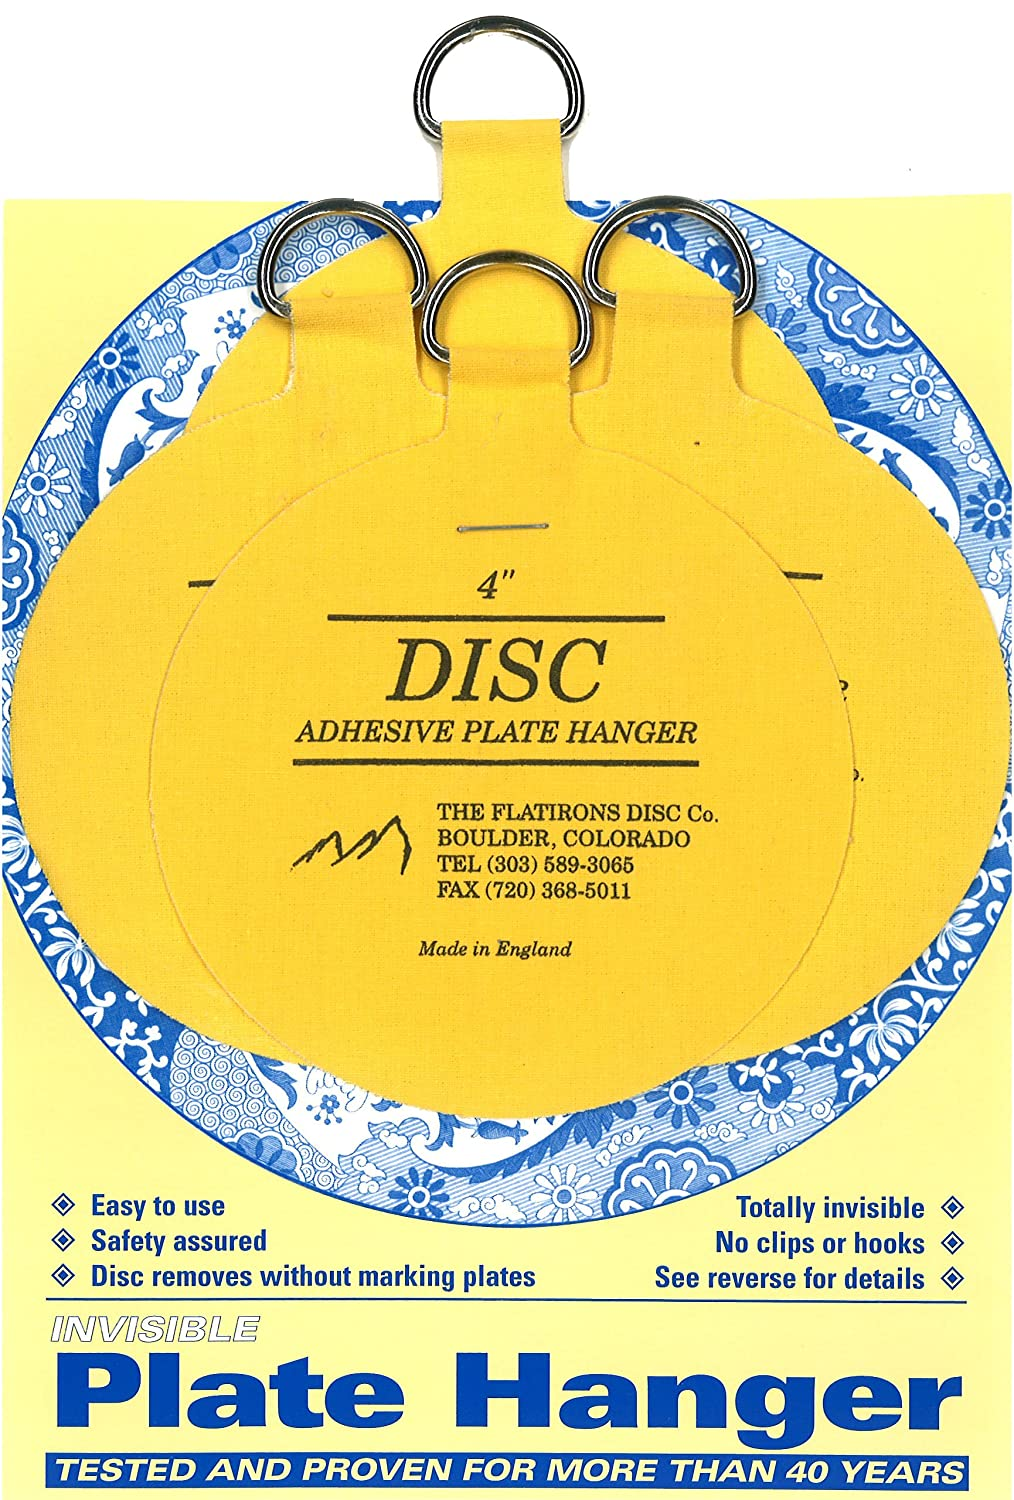 Flatirons Disc Adhesive Large Plate Hanger Set (4 - 4 Inch Hangers) - Picture Hanging Hardware - Amazon.com  sc 1 st  Amazon.com & Flatirons Disc Adhesive Large Plate Hanger Set (4 - 4 Inch Hangers ...